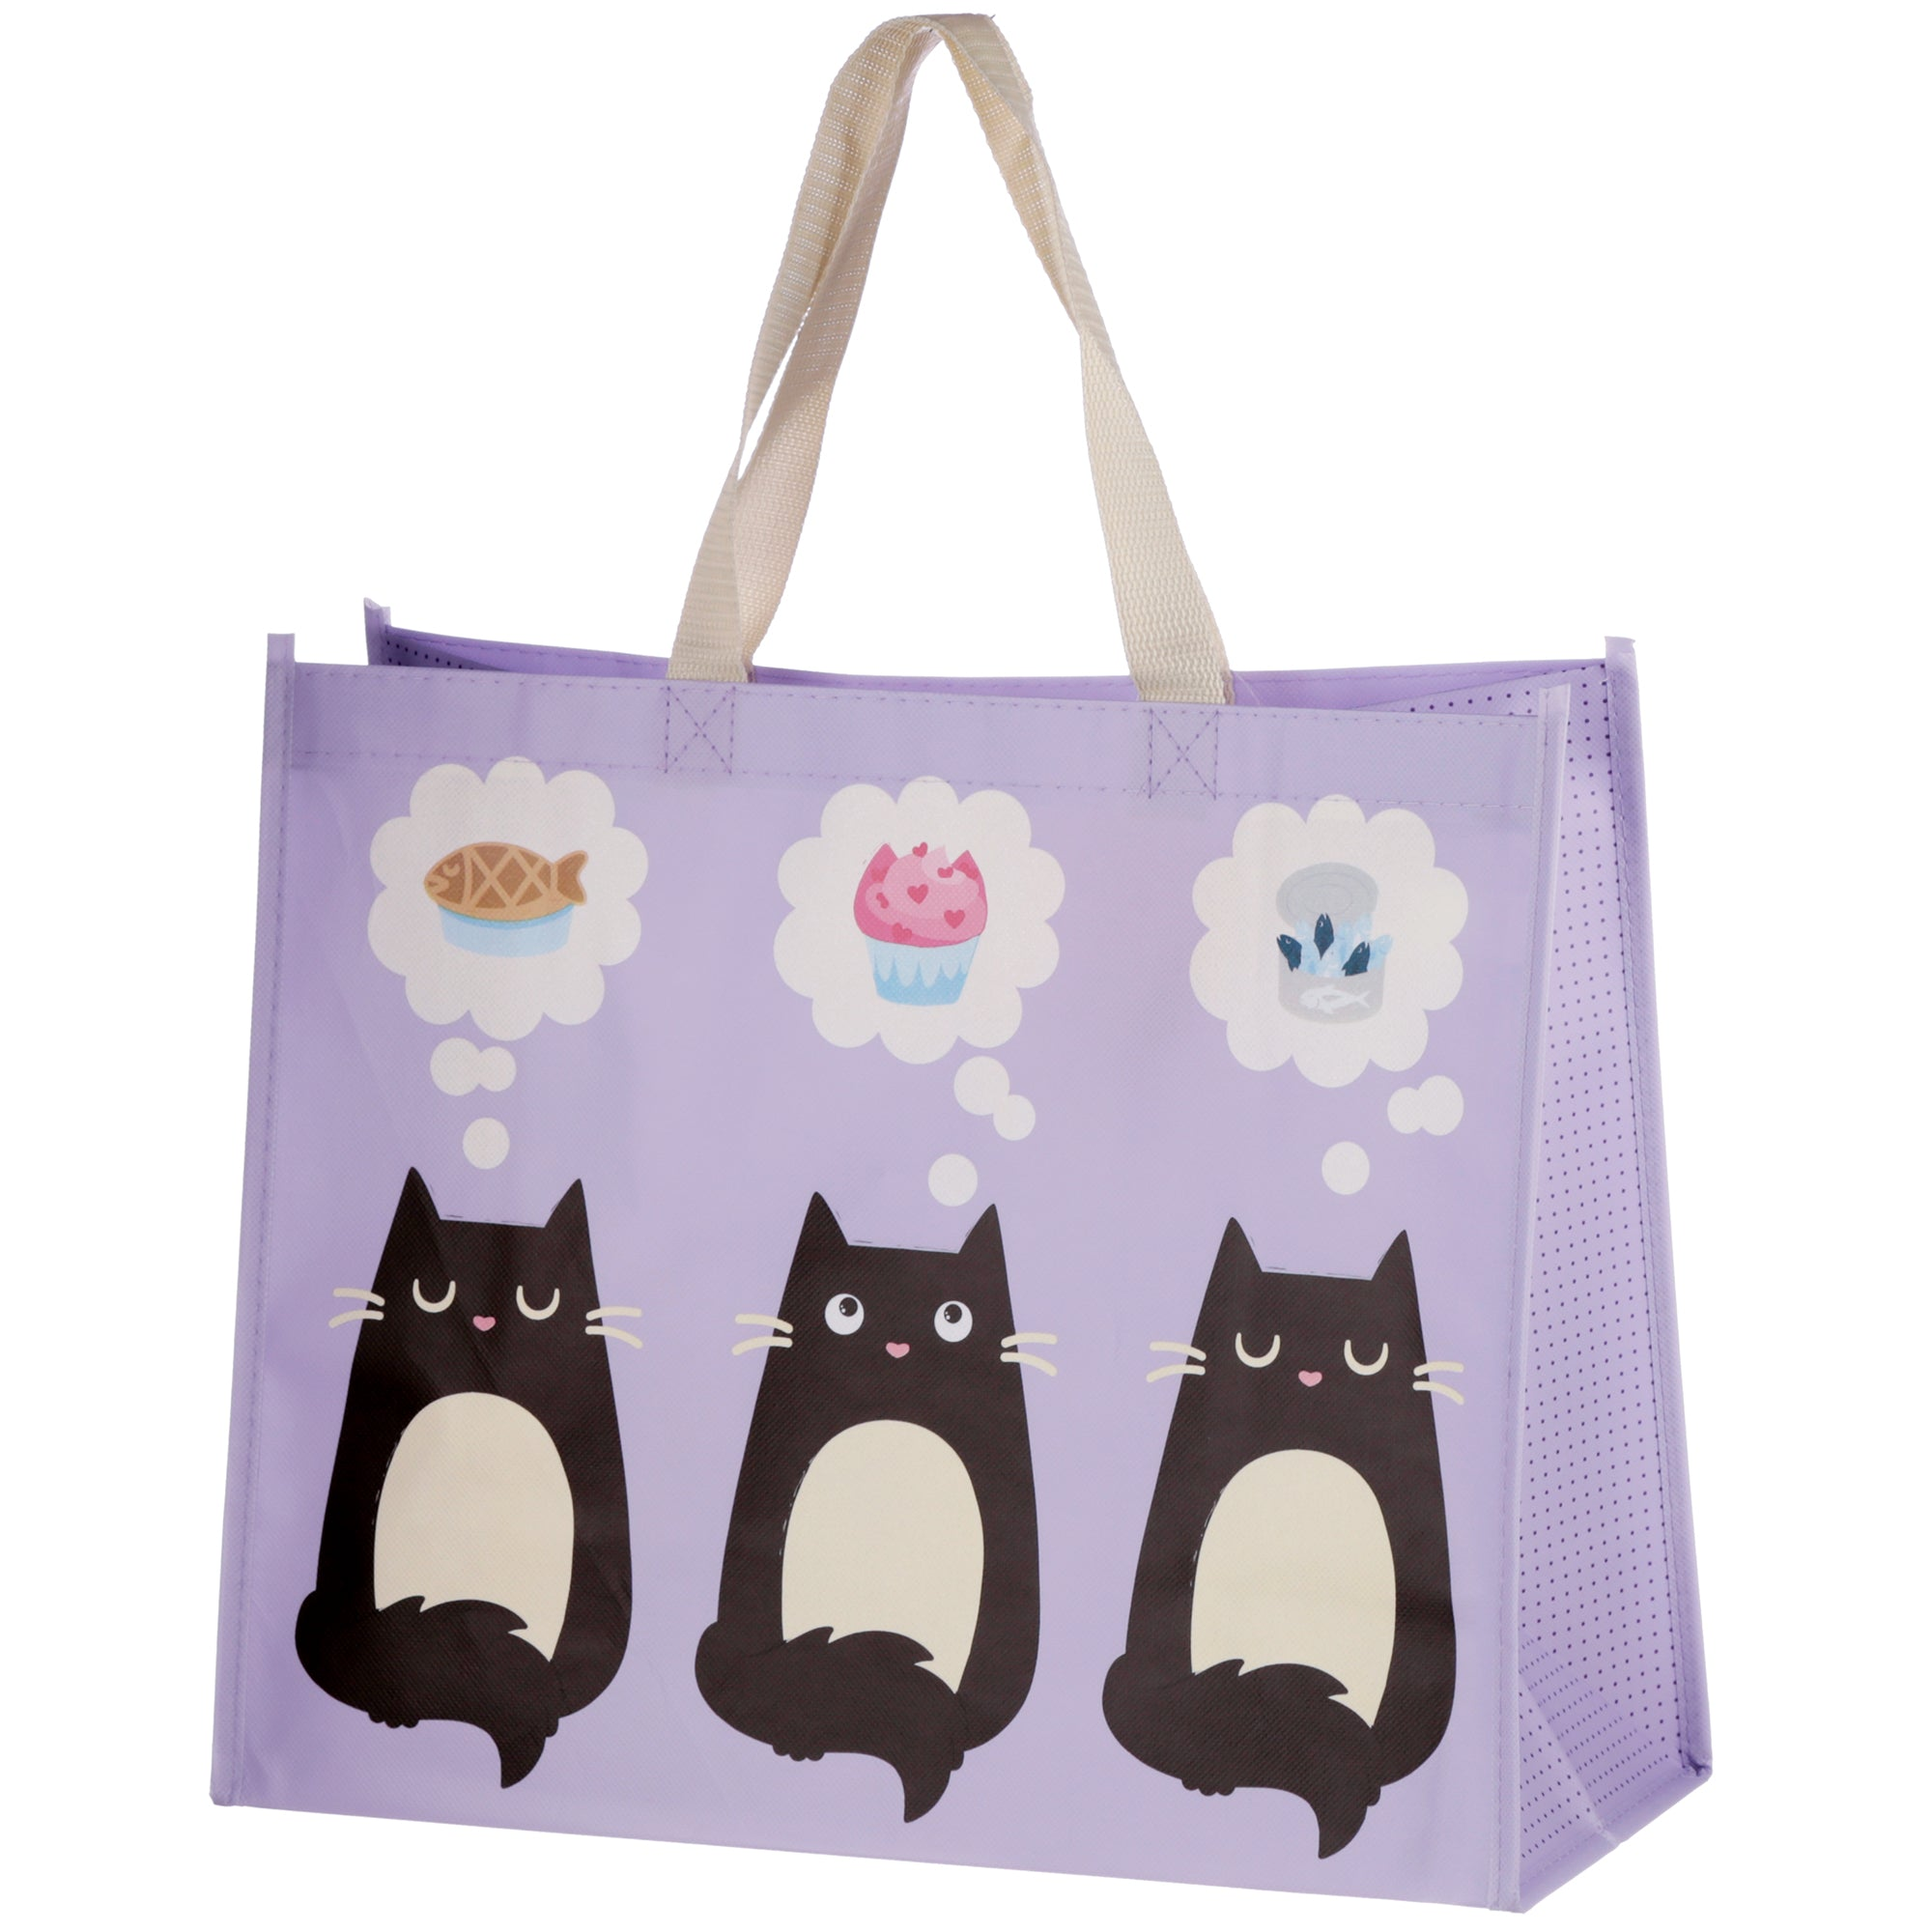 $12.95 - Life of Pet Shopping Tote